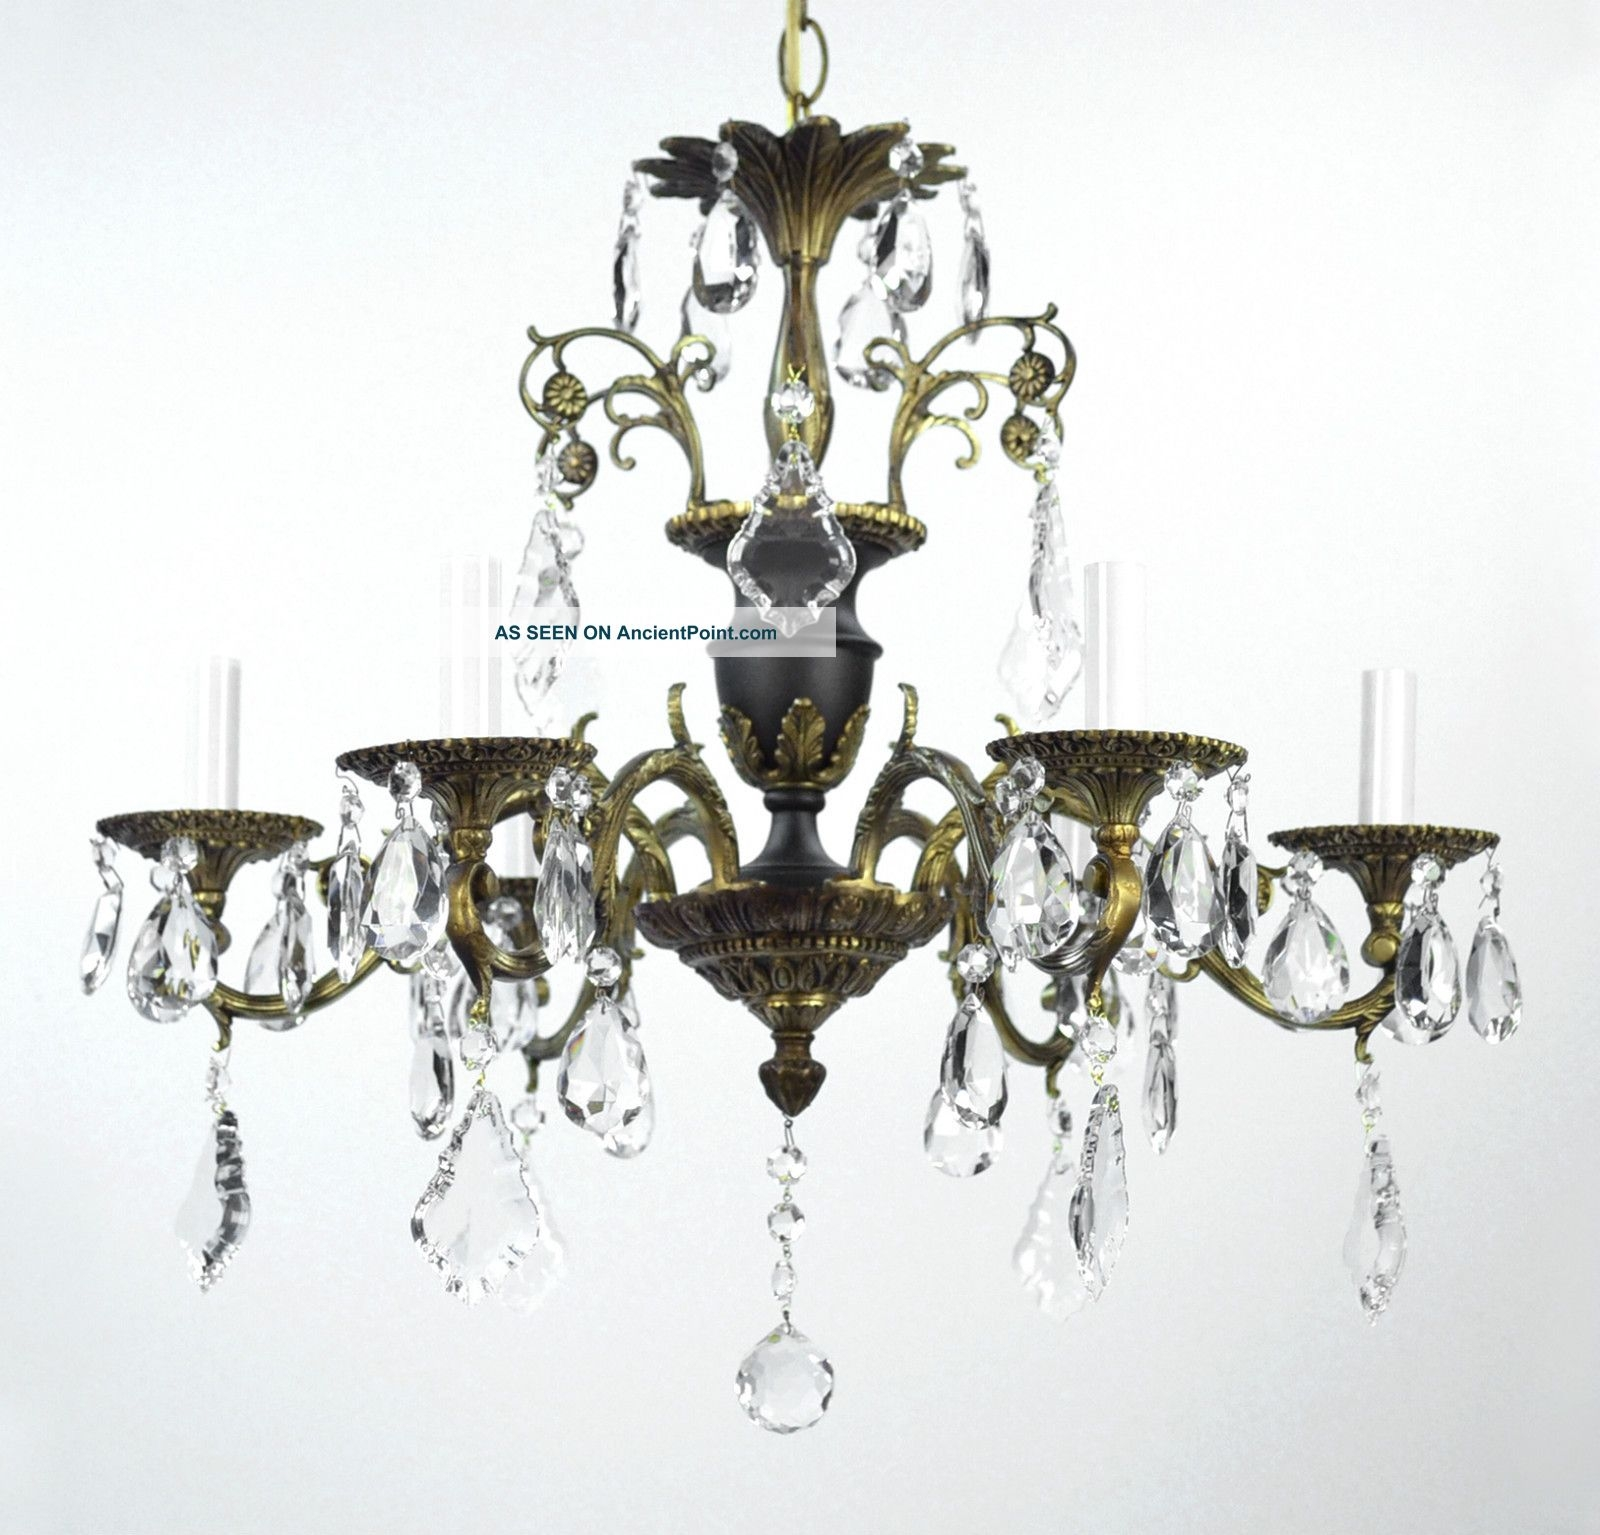 Antique Chandeliers Intended For Antique Chandeliers (#1 of 12)